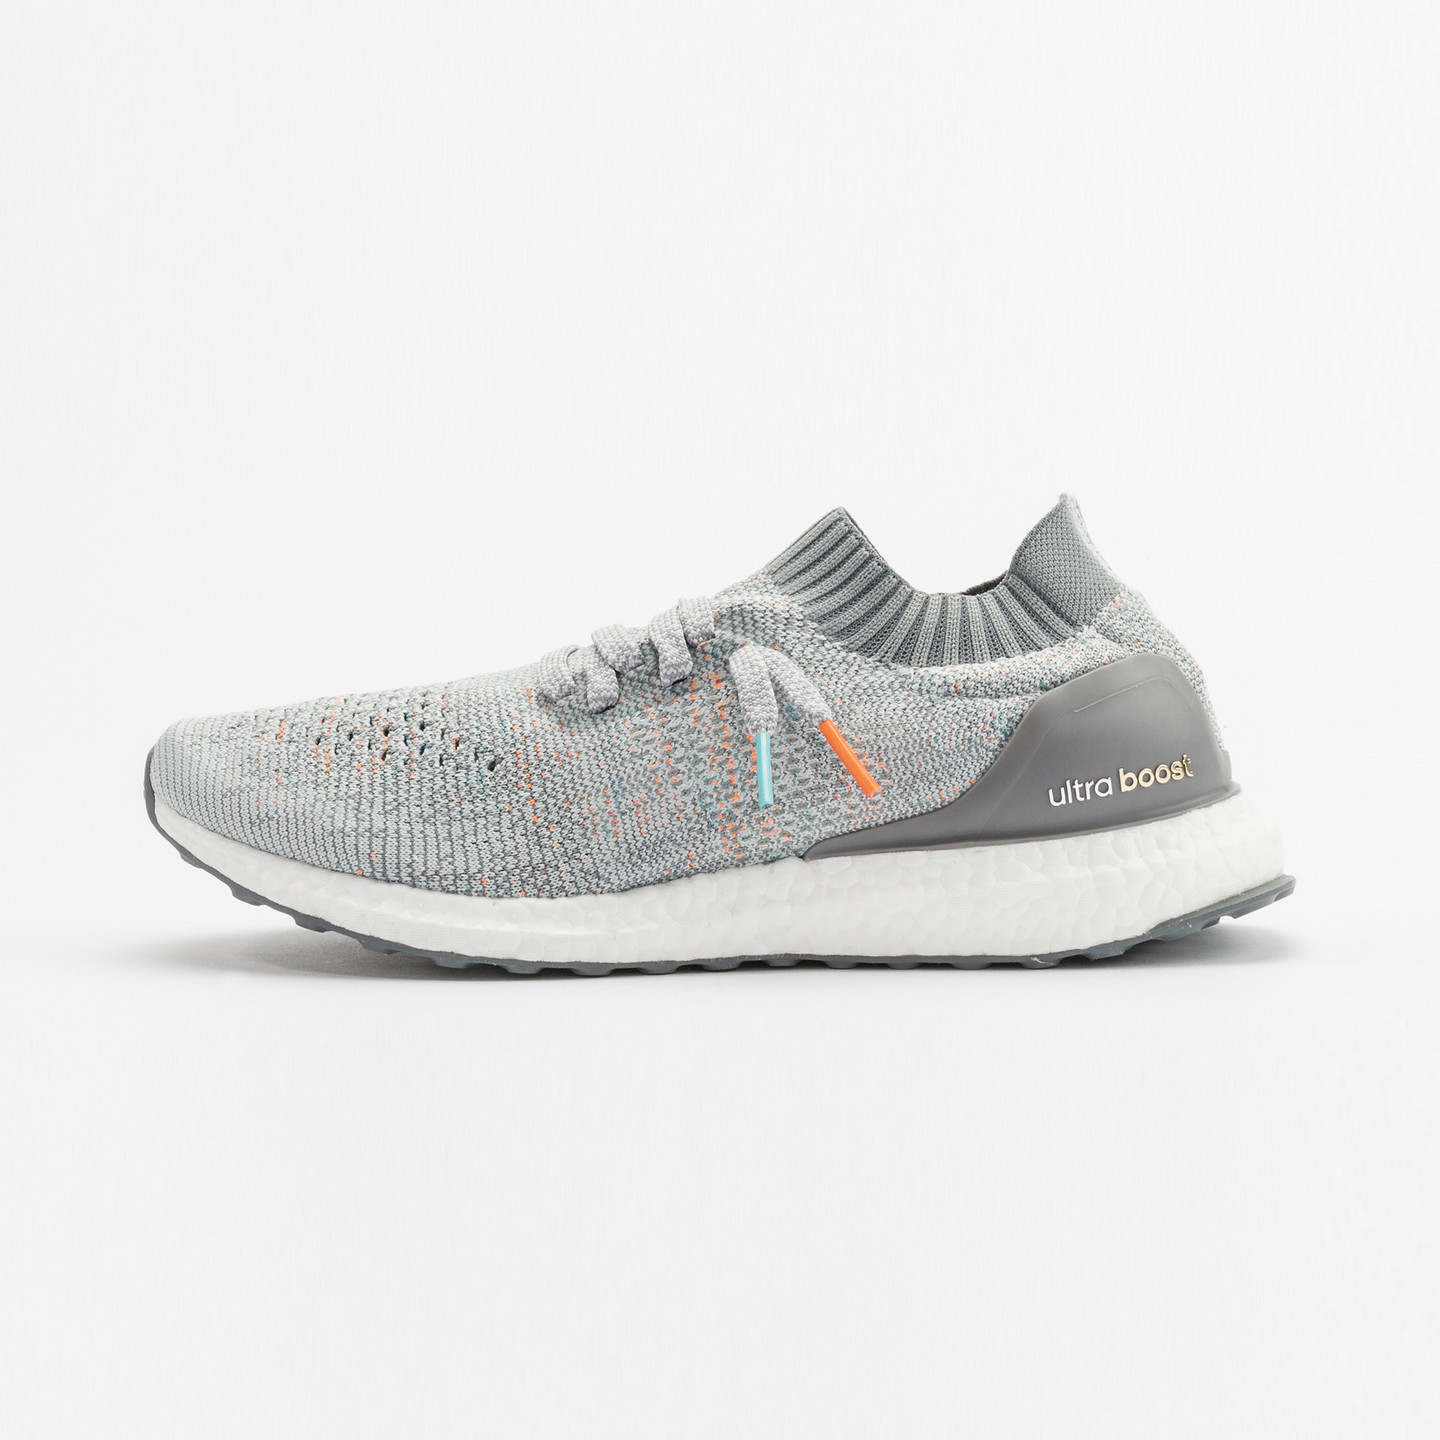 Adidas Ultra Boost Uncaged 'Miami Dolphins' Clear Grey / Mid Grey / Orange / Aqua BB4489-45.33